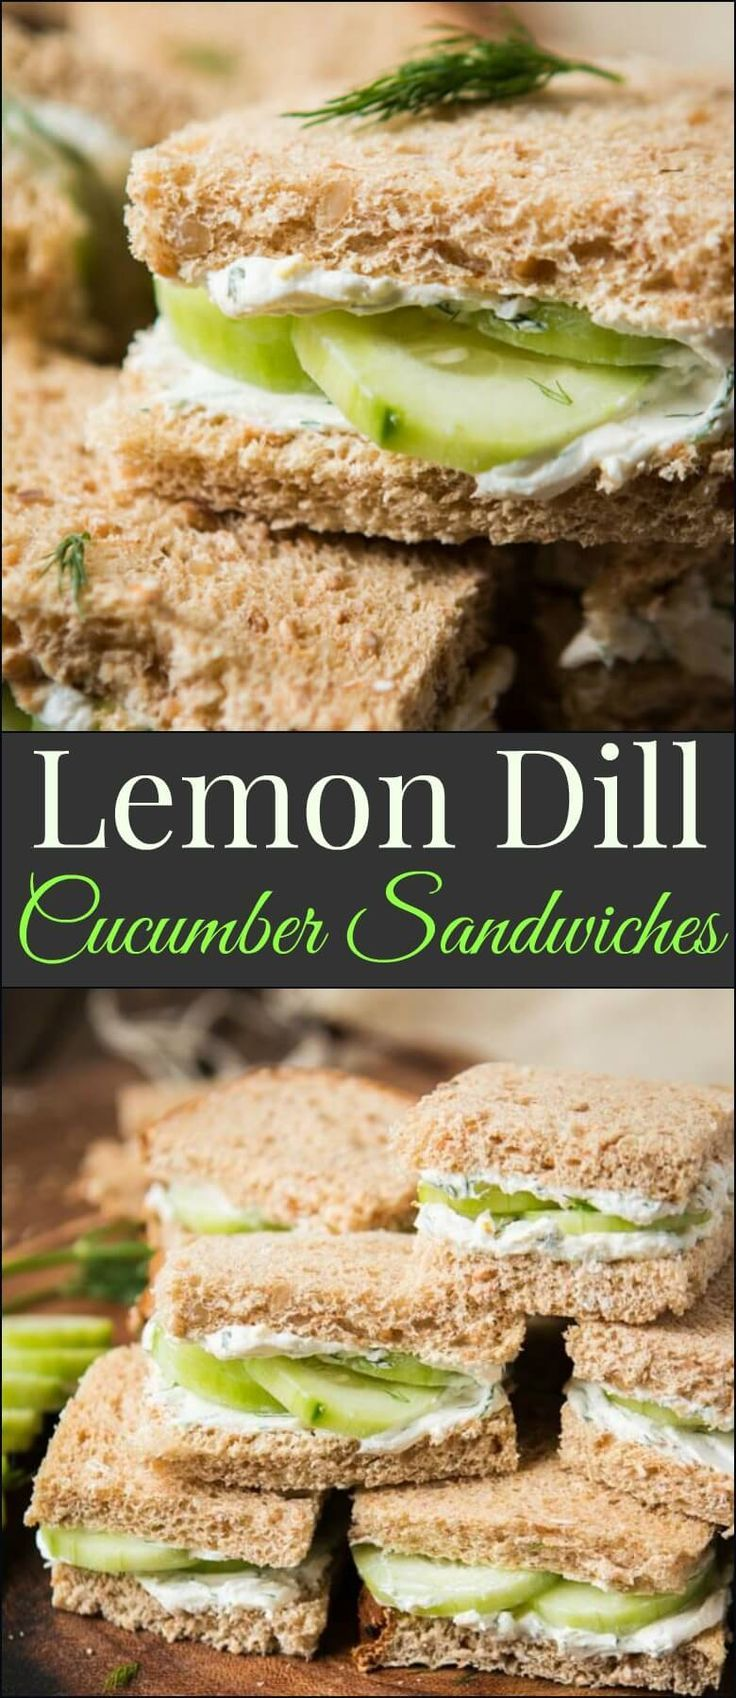 #dontbebland! The best lemon dill cucumber sandwiches I've ever had added a touch of Greek yogurt to the spread. Try this awesome tea sandwich recipe at your next party! /eurekabread/ #eurekabread #ad http://ohsweetbasil.com